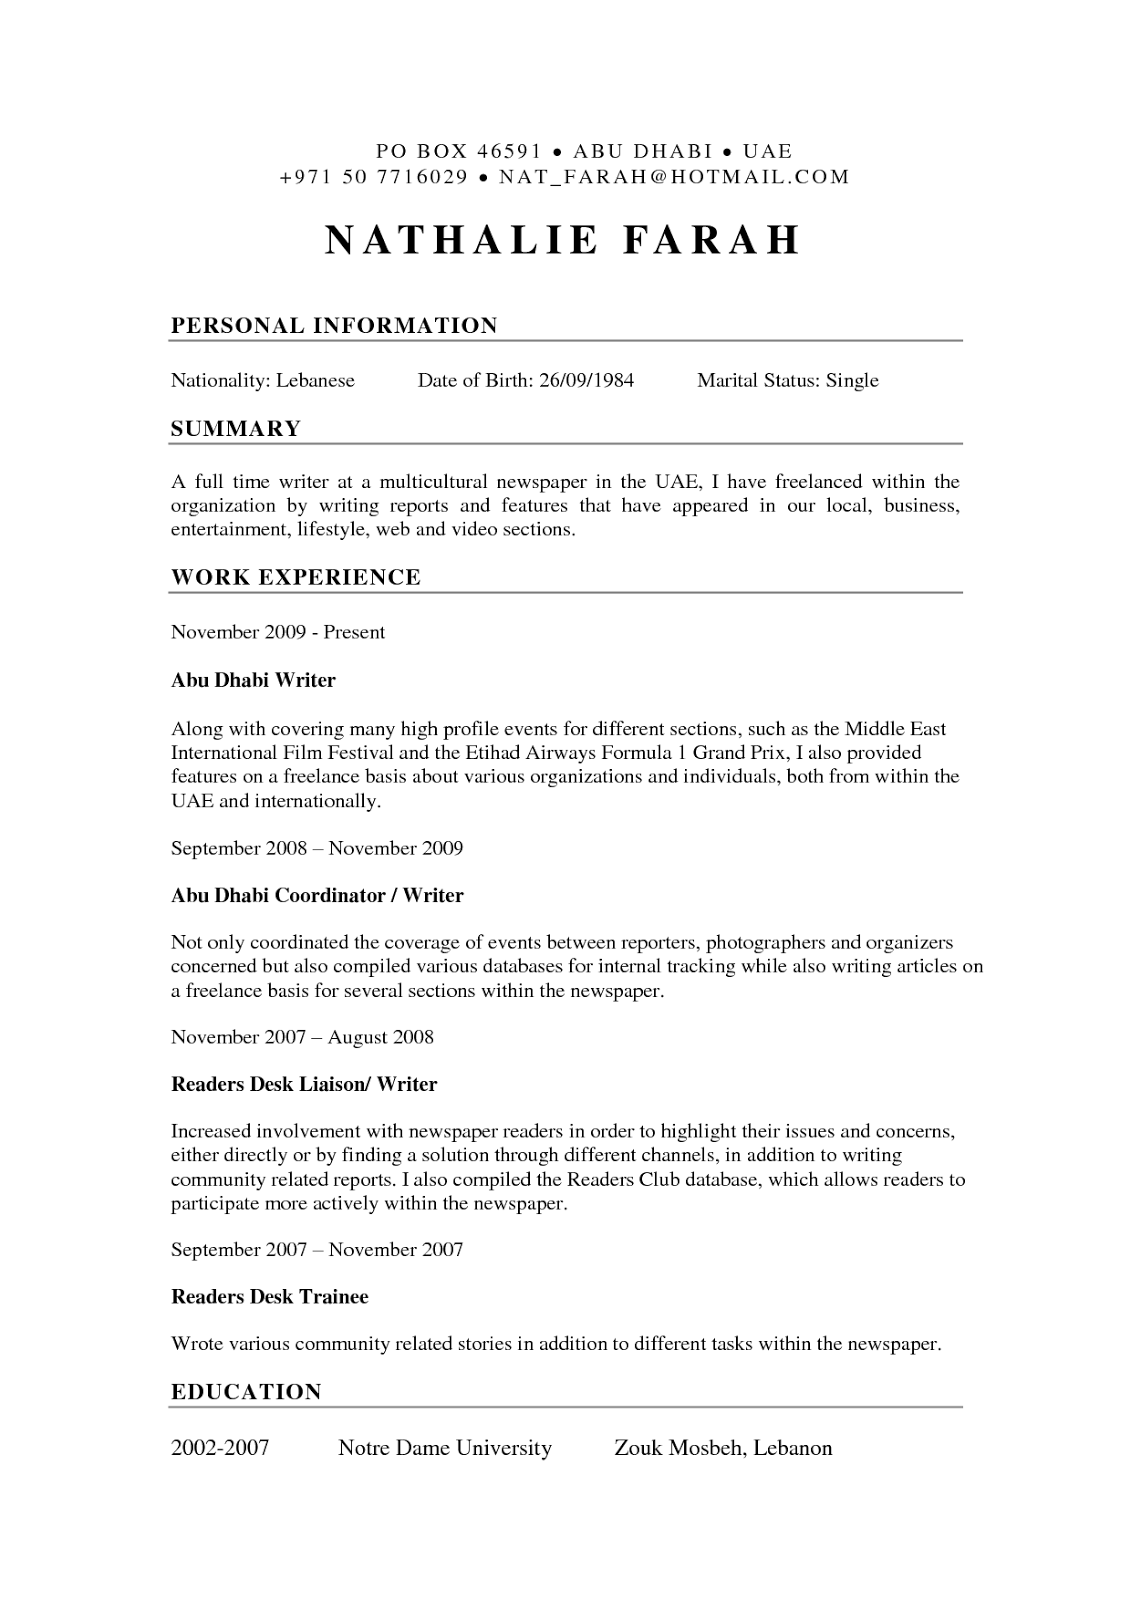 resume writing with resume templates - Free Resume Writers